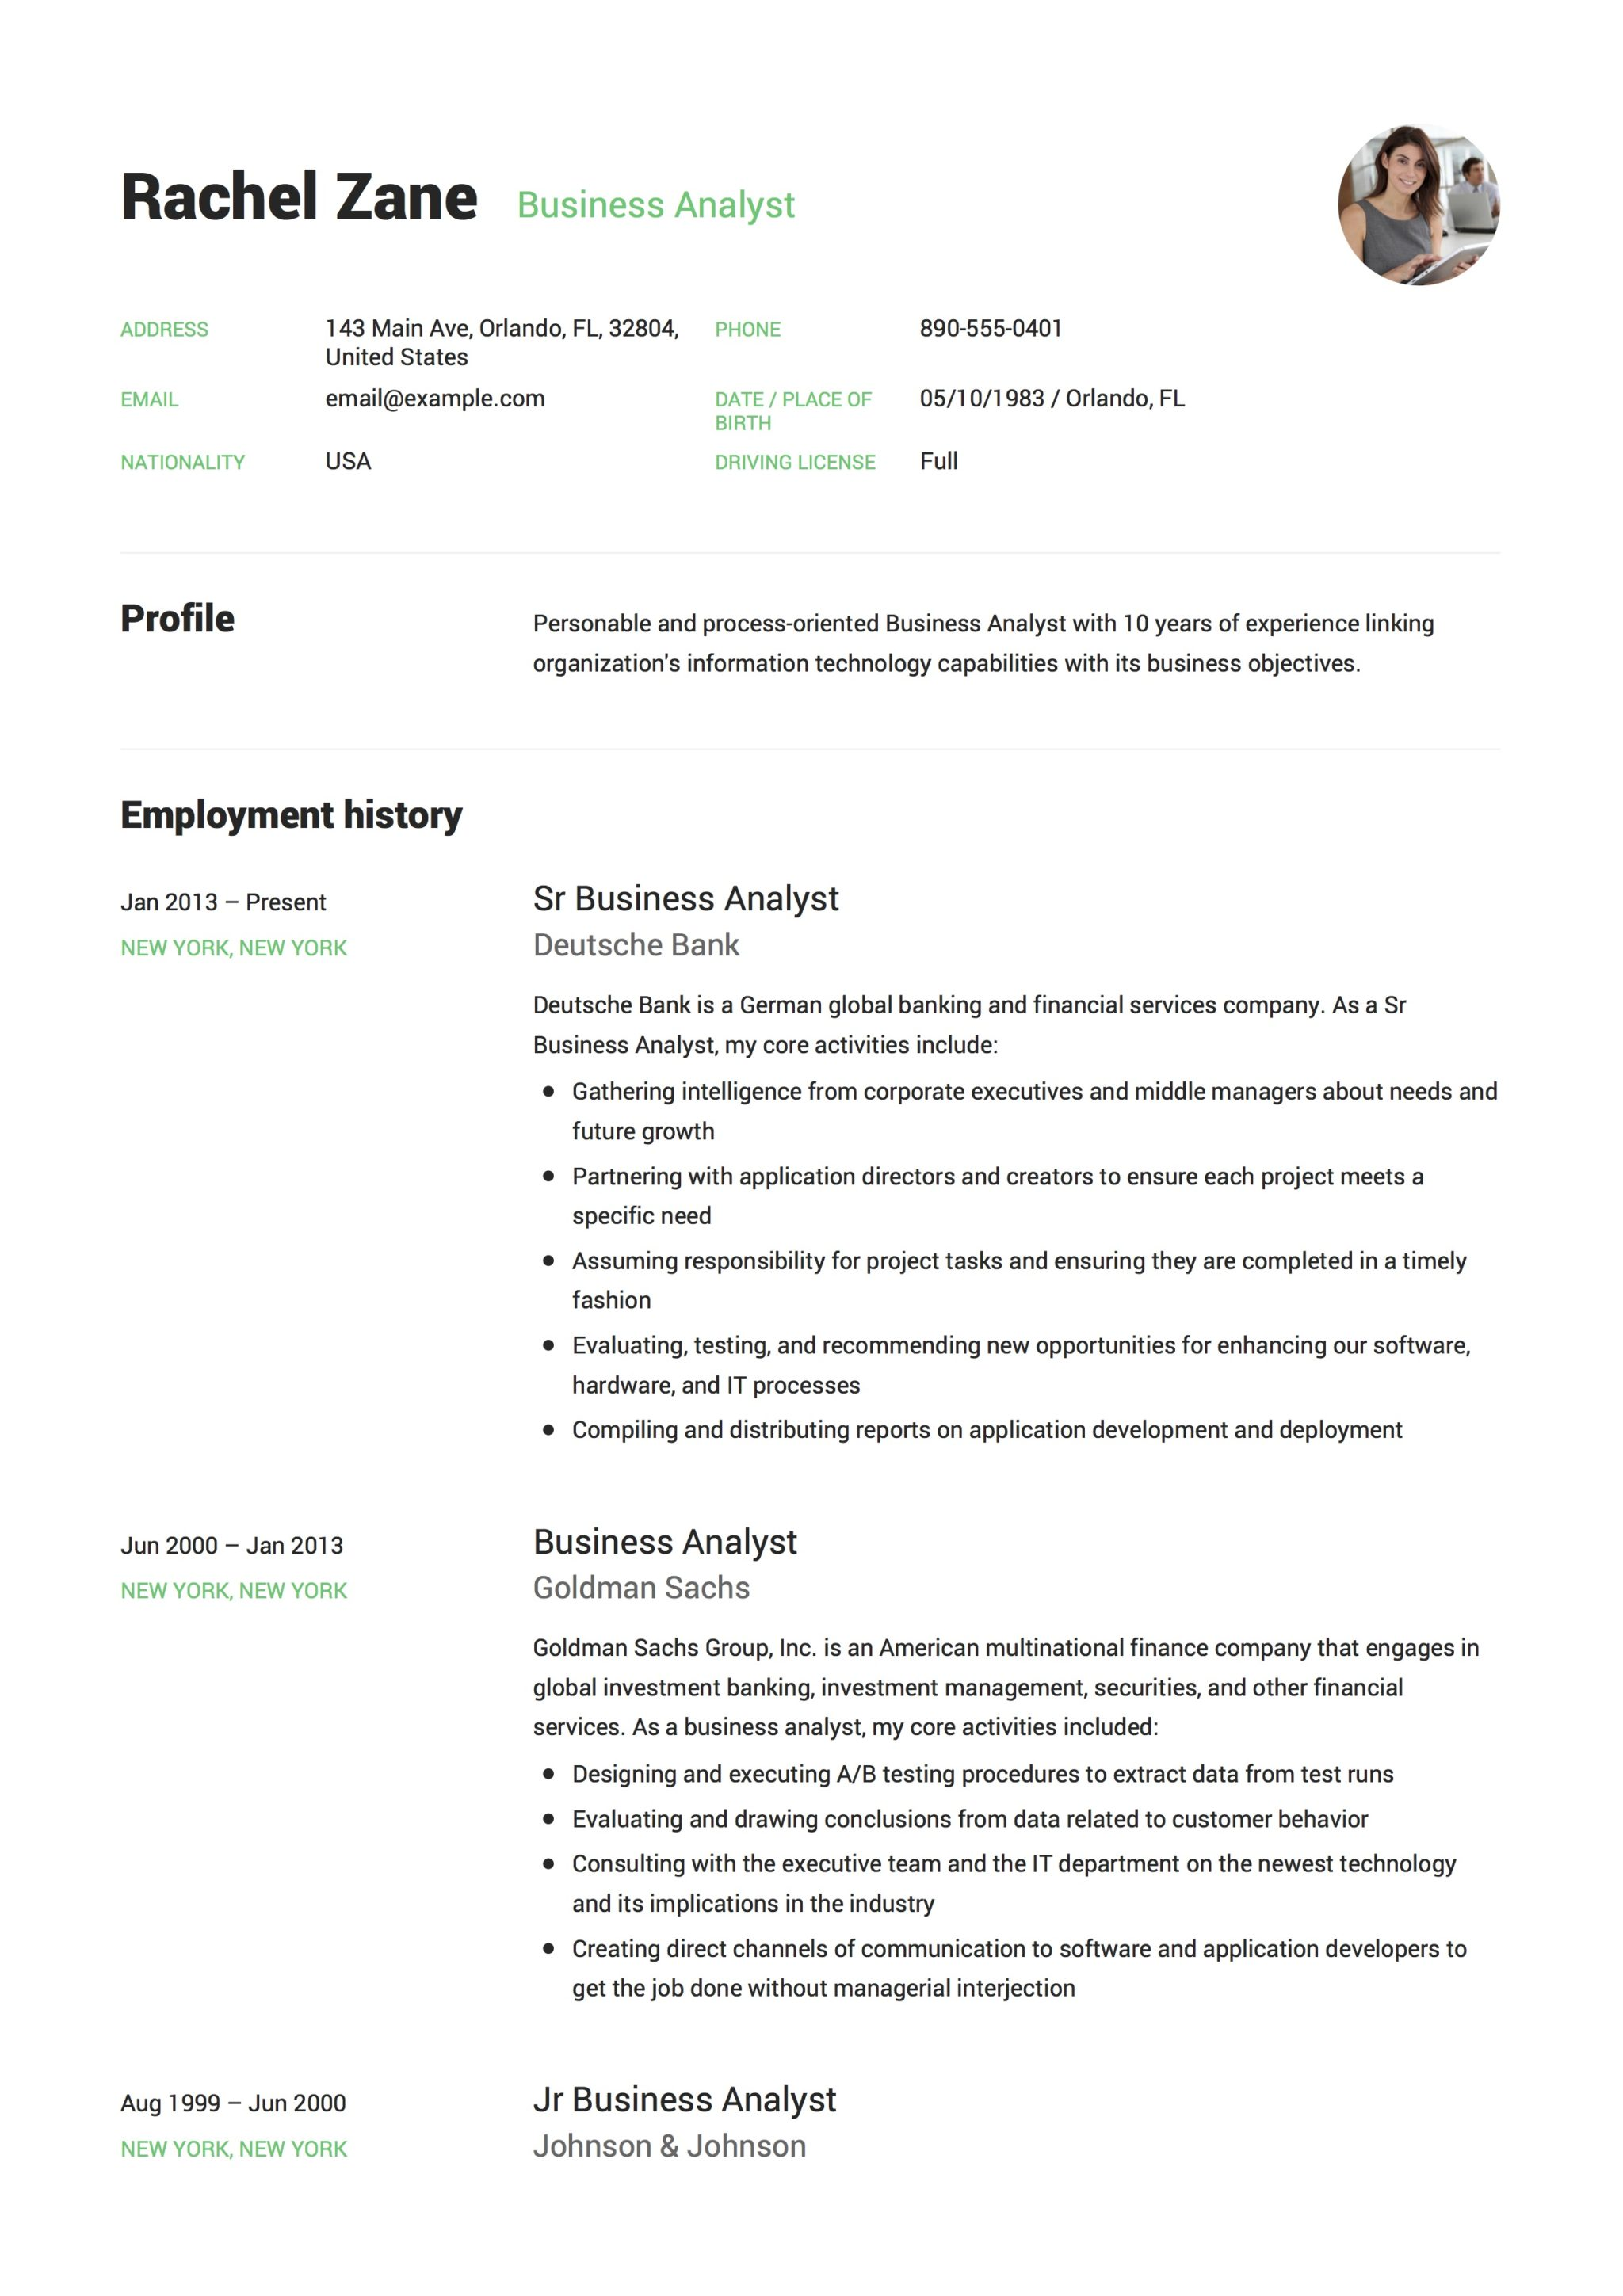 12 business analyst resume samples 2018 free downloads rachel zane resume template business analyst accmission